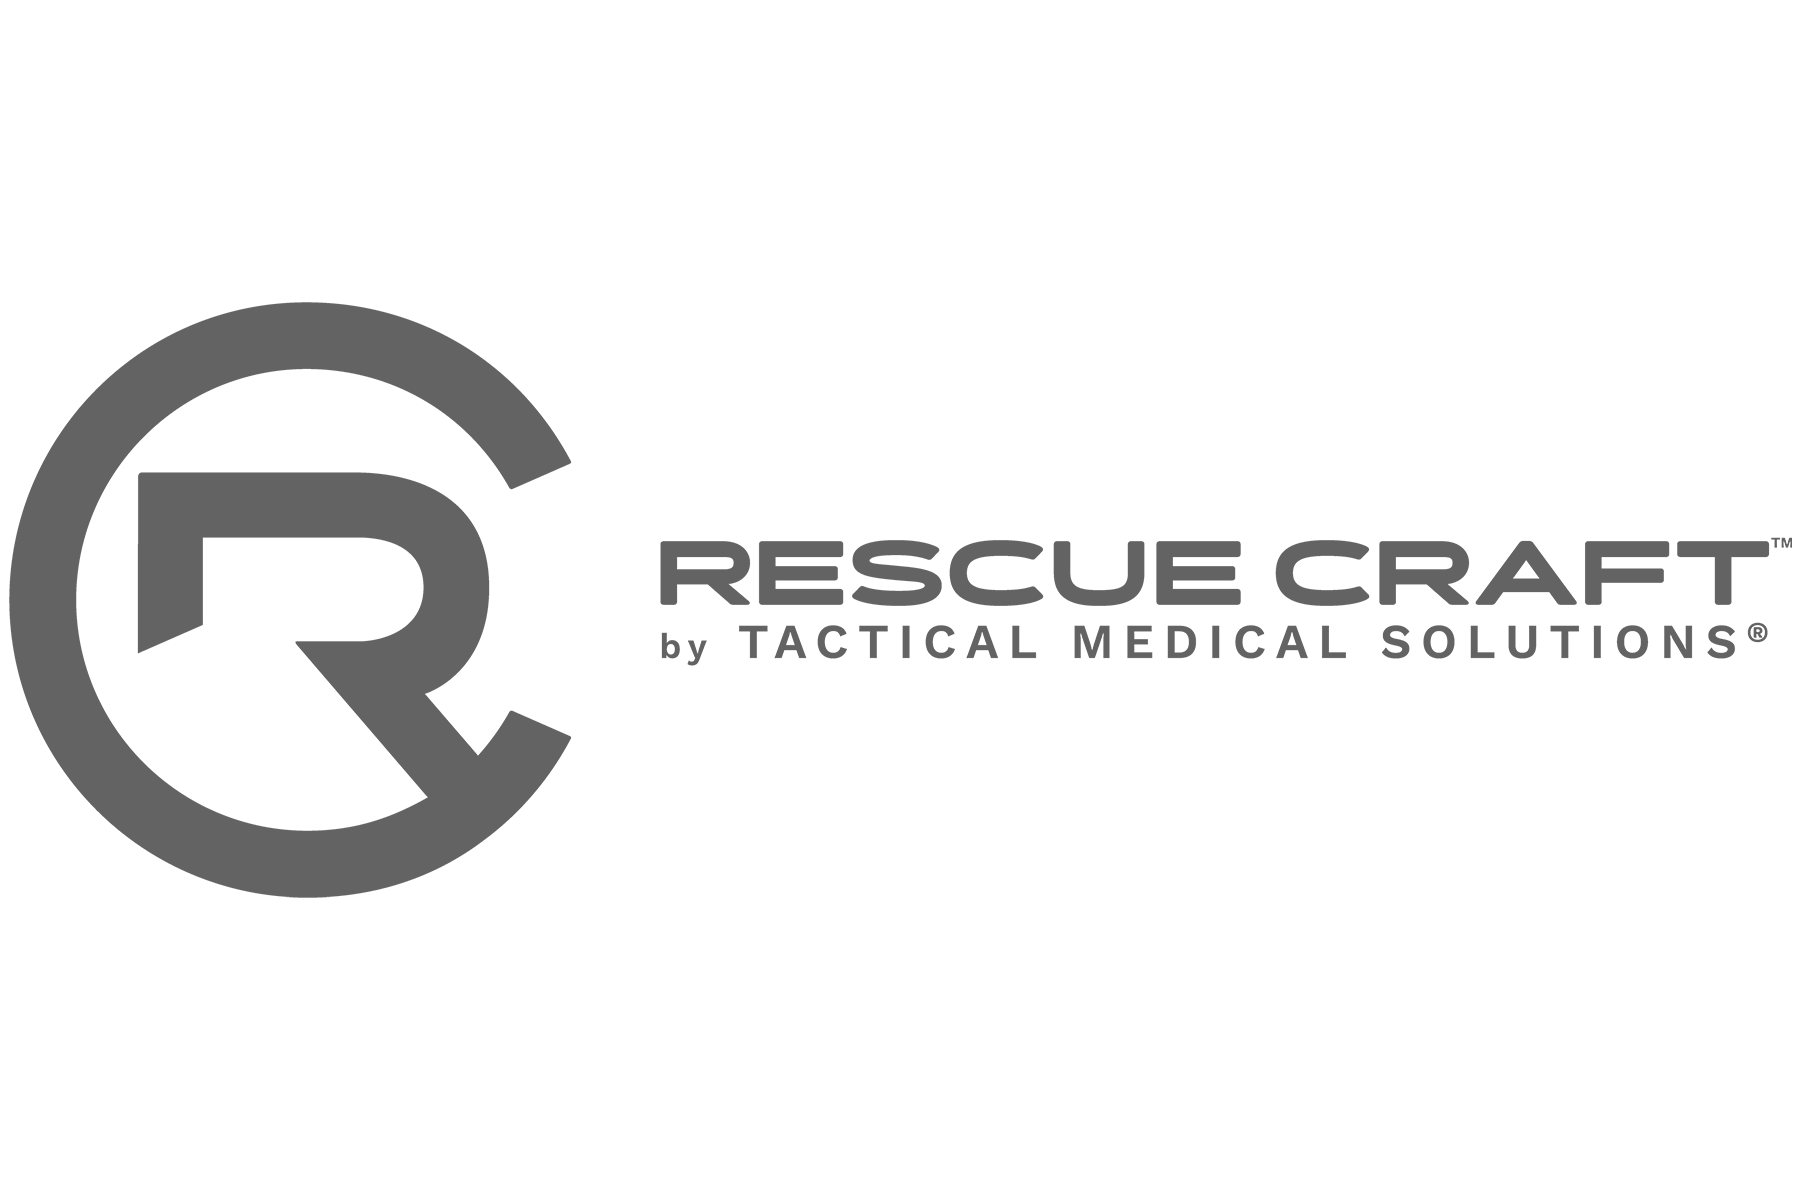 Rescue-Craft-Logo.png